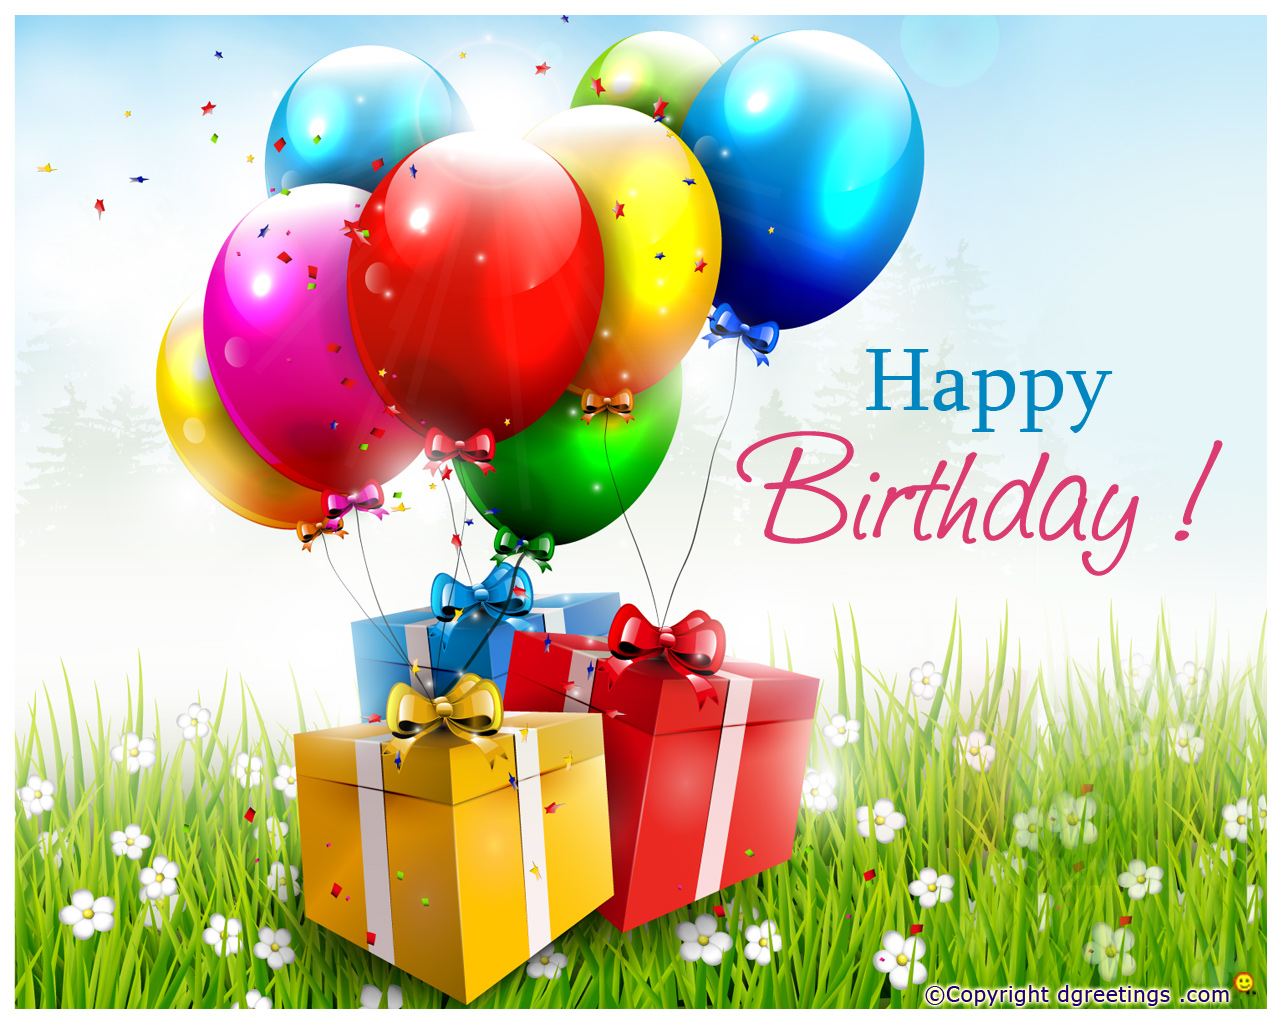 Birthday wallpapers of different sizes Wallpapers 1280x1024